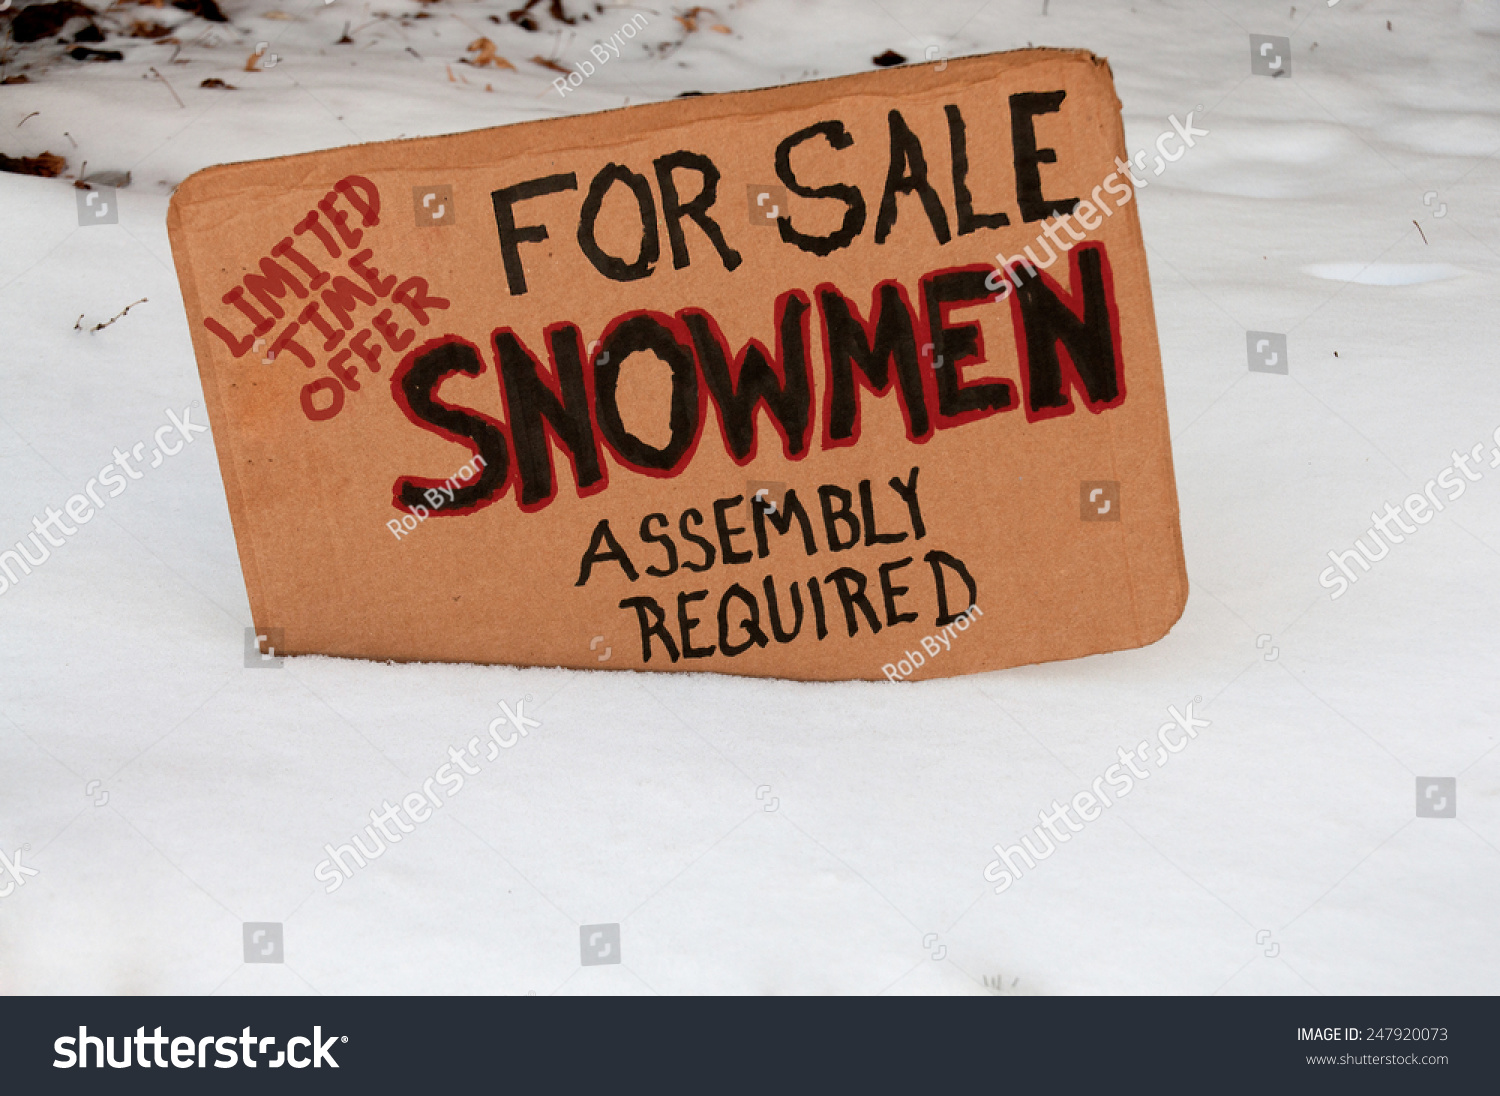 Snowman for sale assembly required limited time offer stock photo